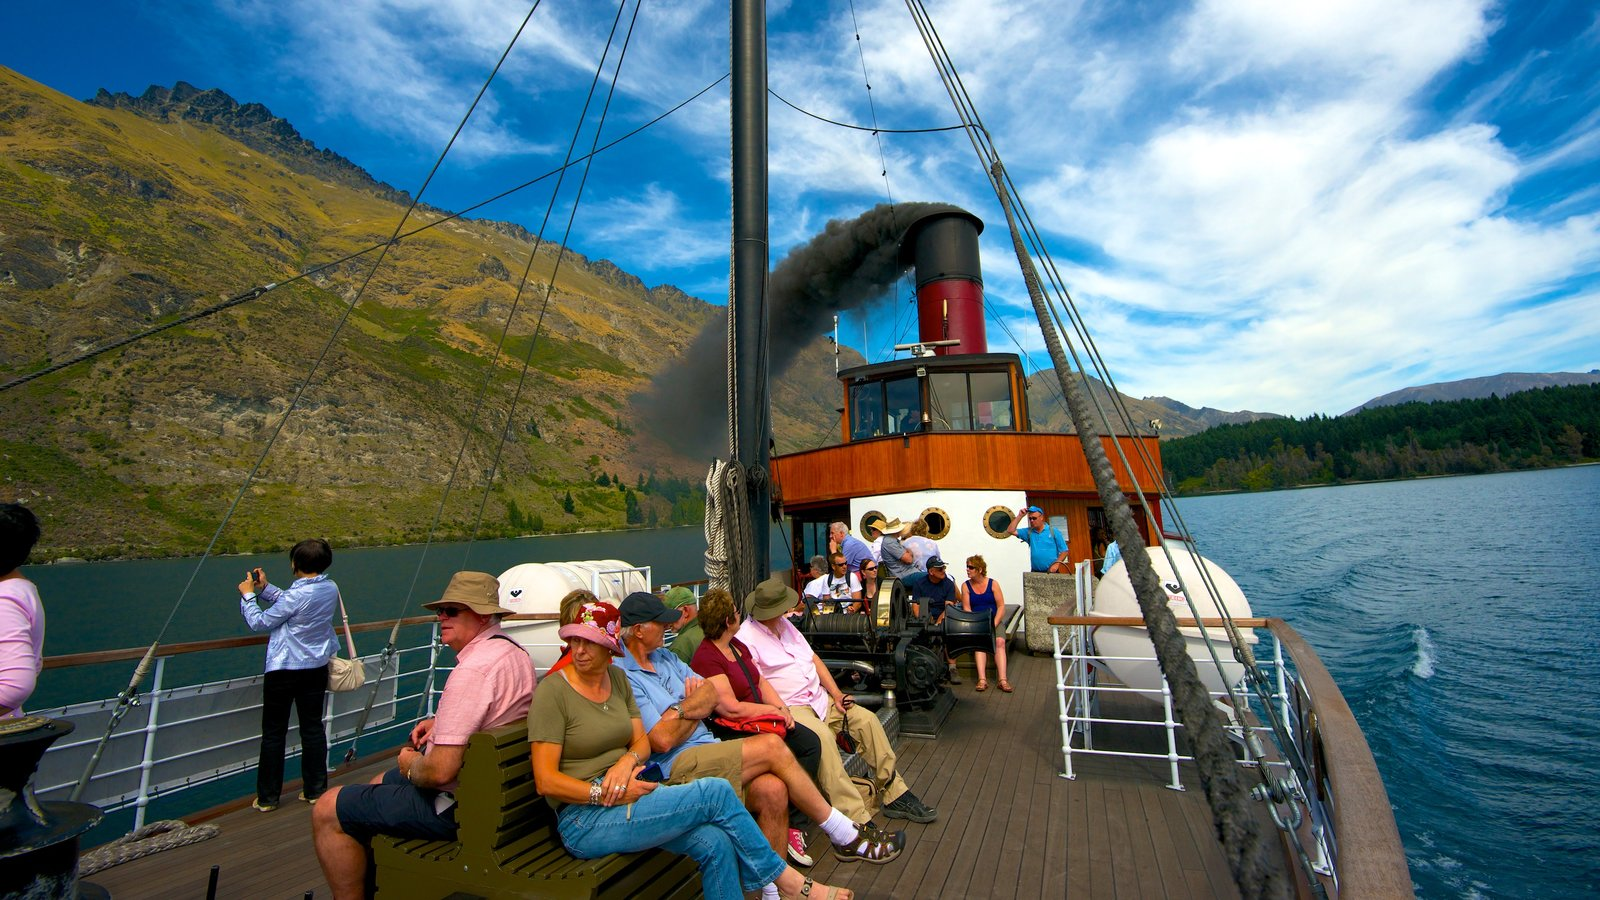 TSS Earnslaw Steamship showing boating and general coastal views as well as a large group of people